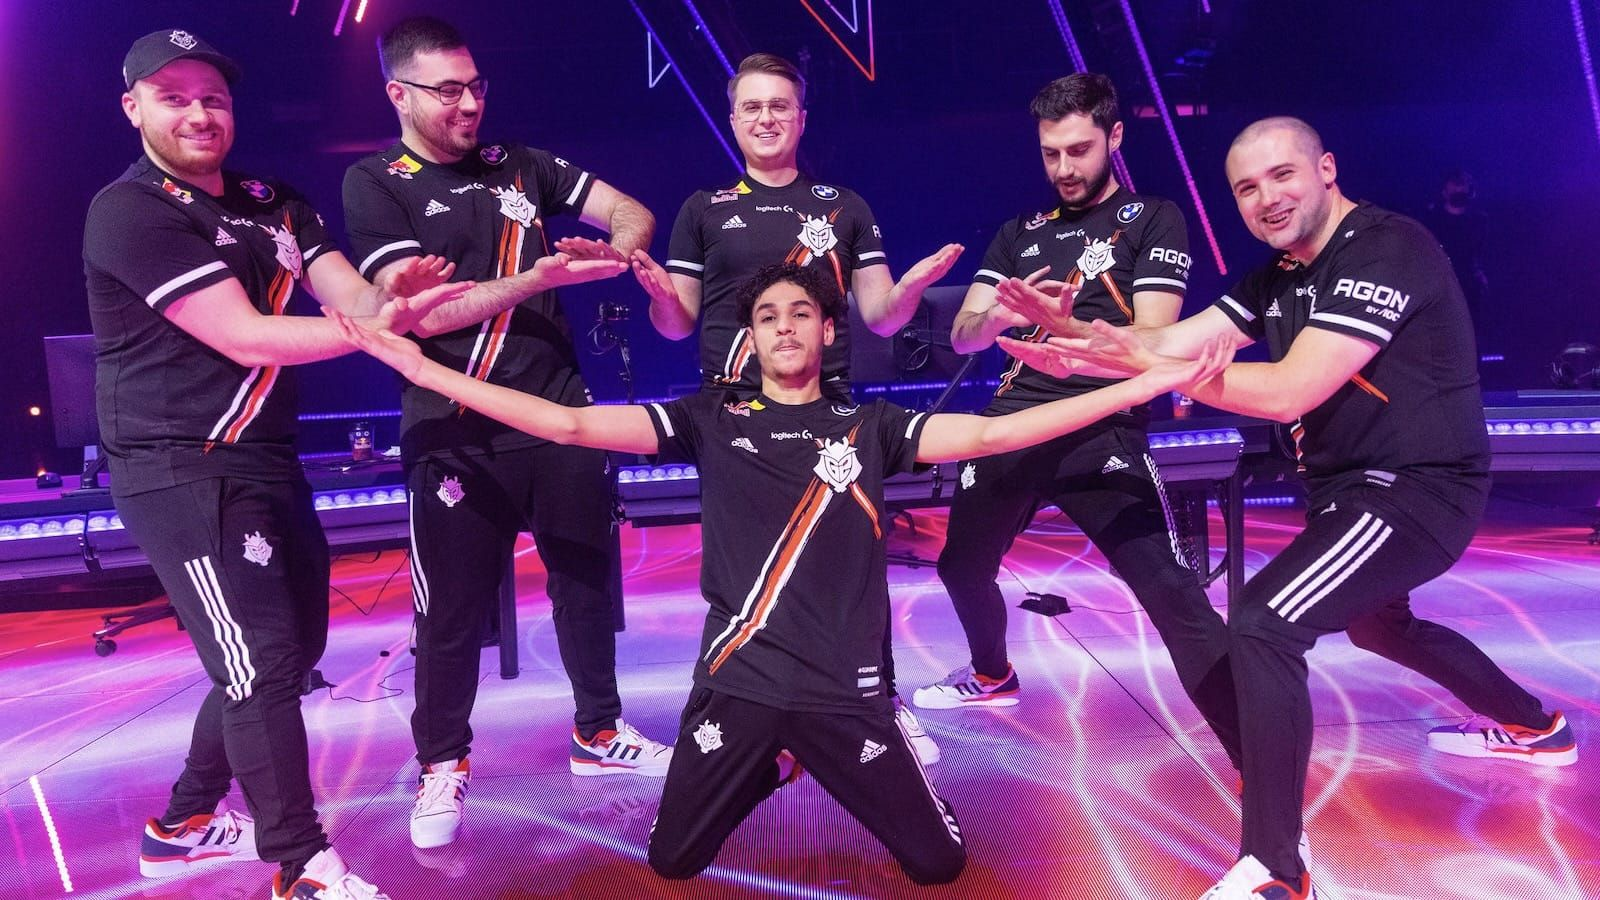 G2 Valorant team celebrate on stage after a match at Masters: Berlin tournament